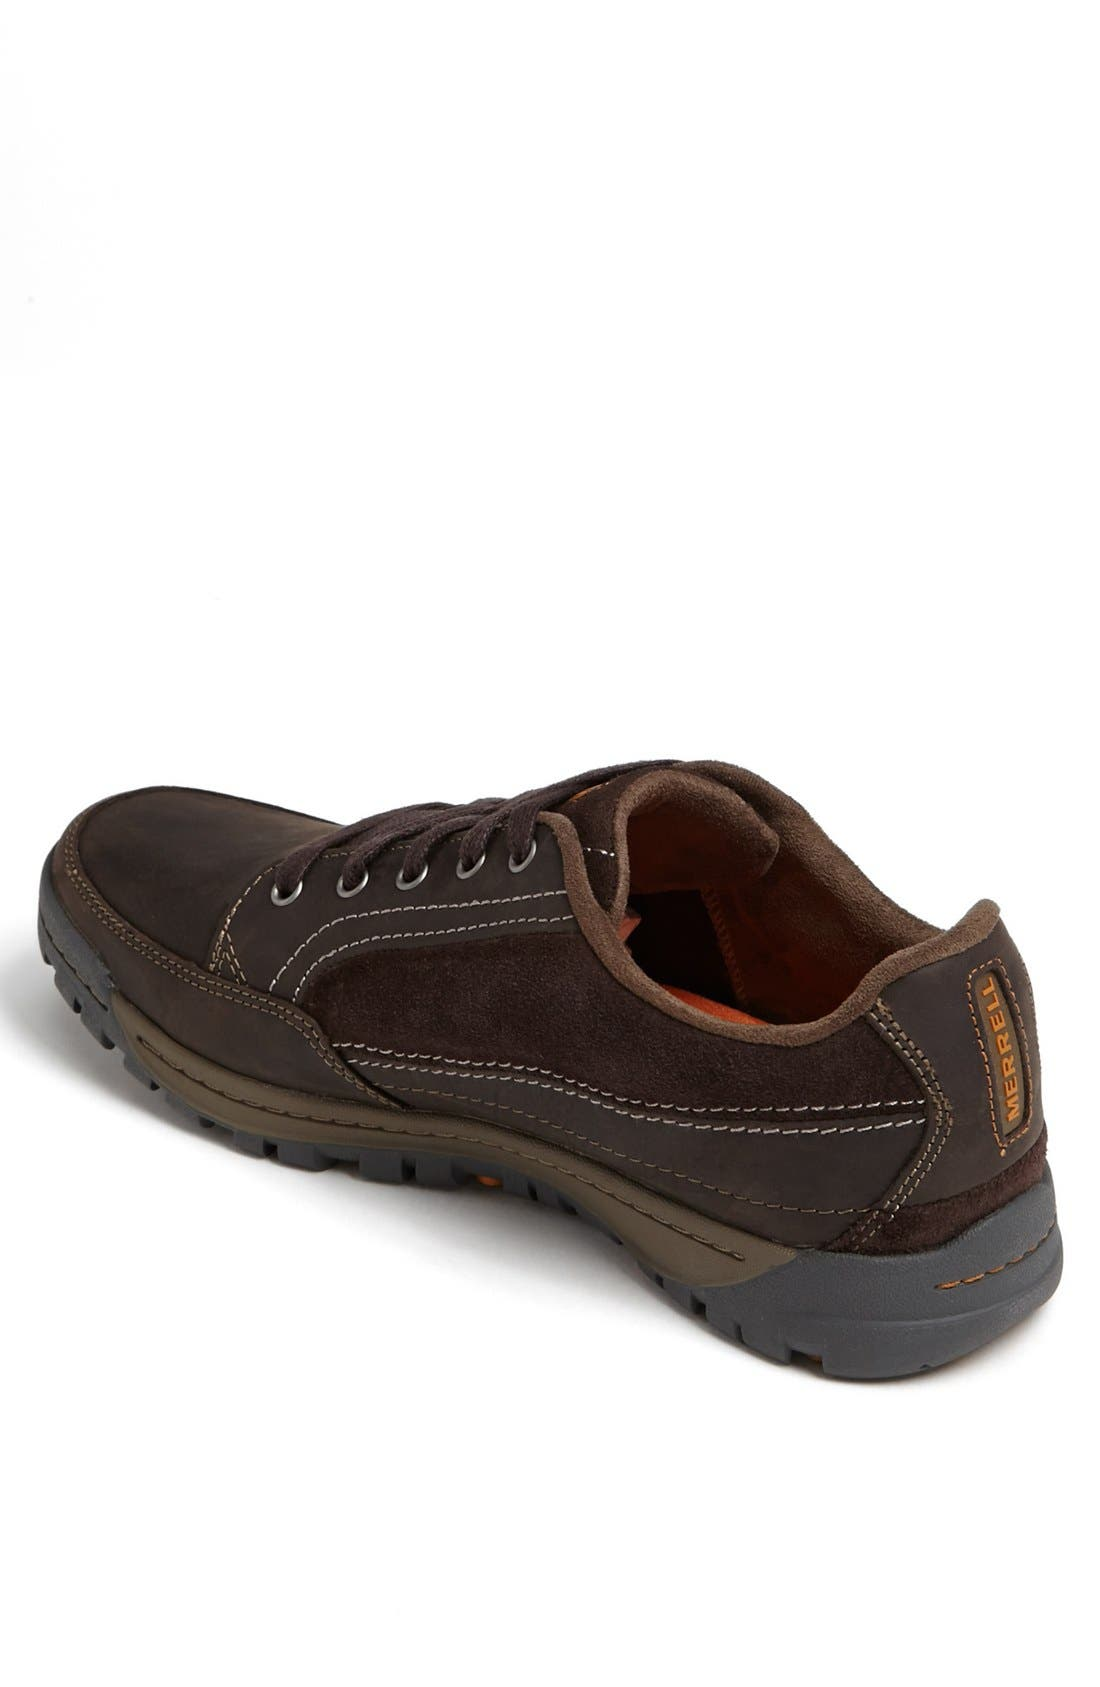 Alternate Image 2  - Merrell 'Traveler Sphere' Sneaker (Men)